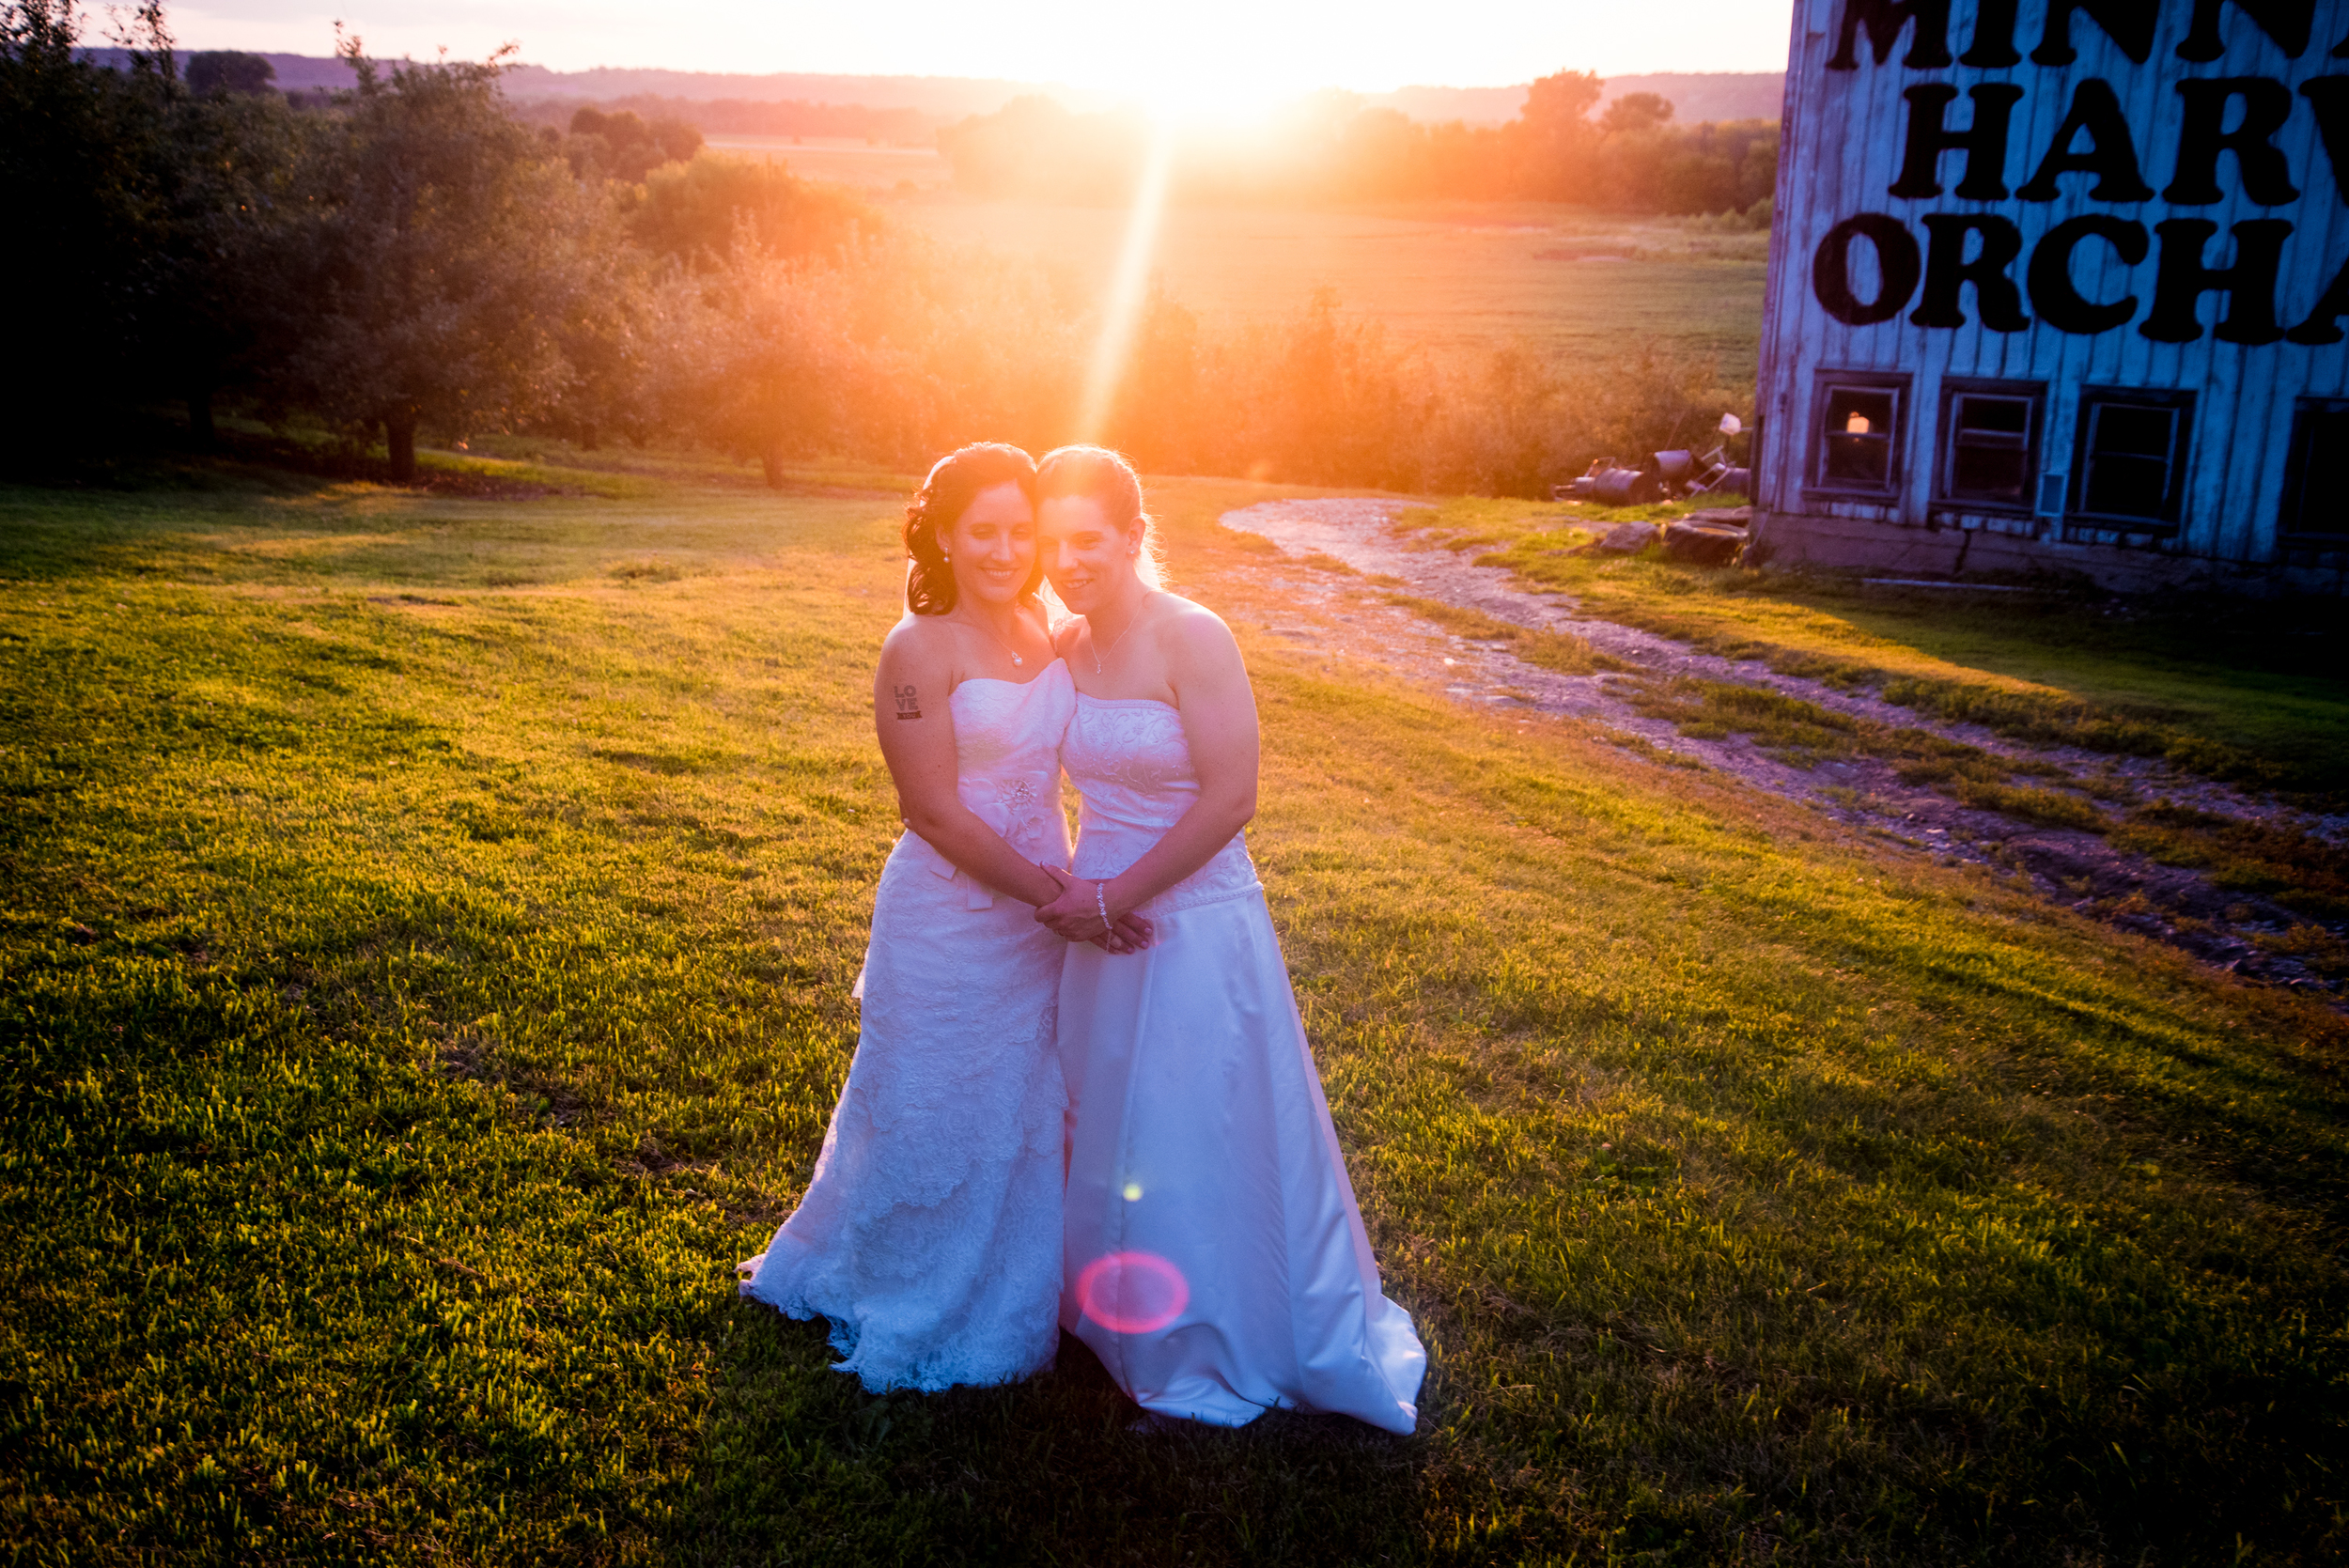 Minnesota LGBT Wedding Photography - Megan and Trista - RKH Images - Portraits (377 of 490).jpg